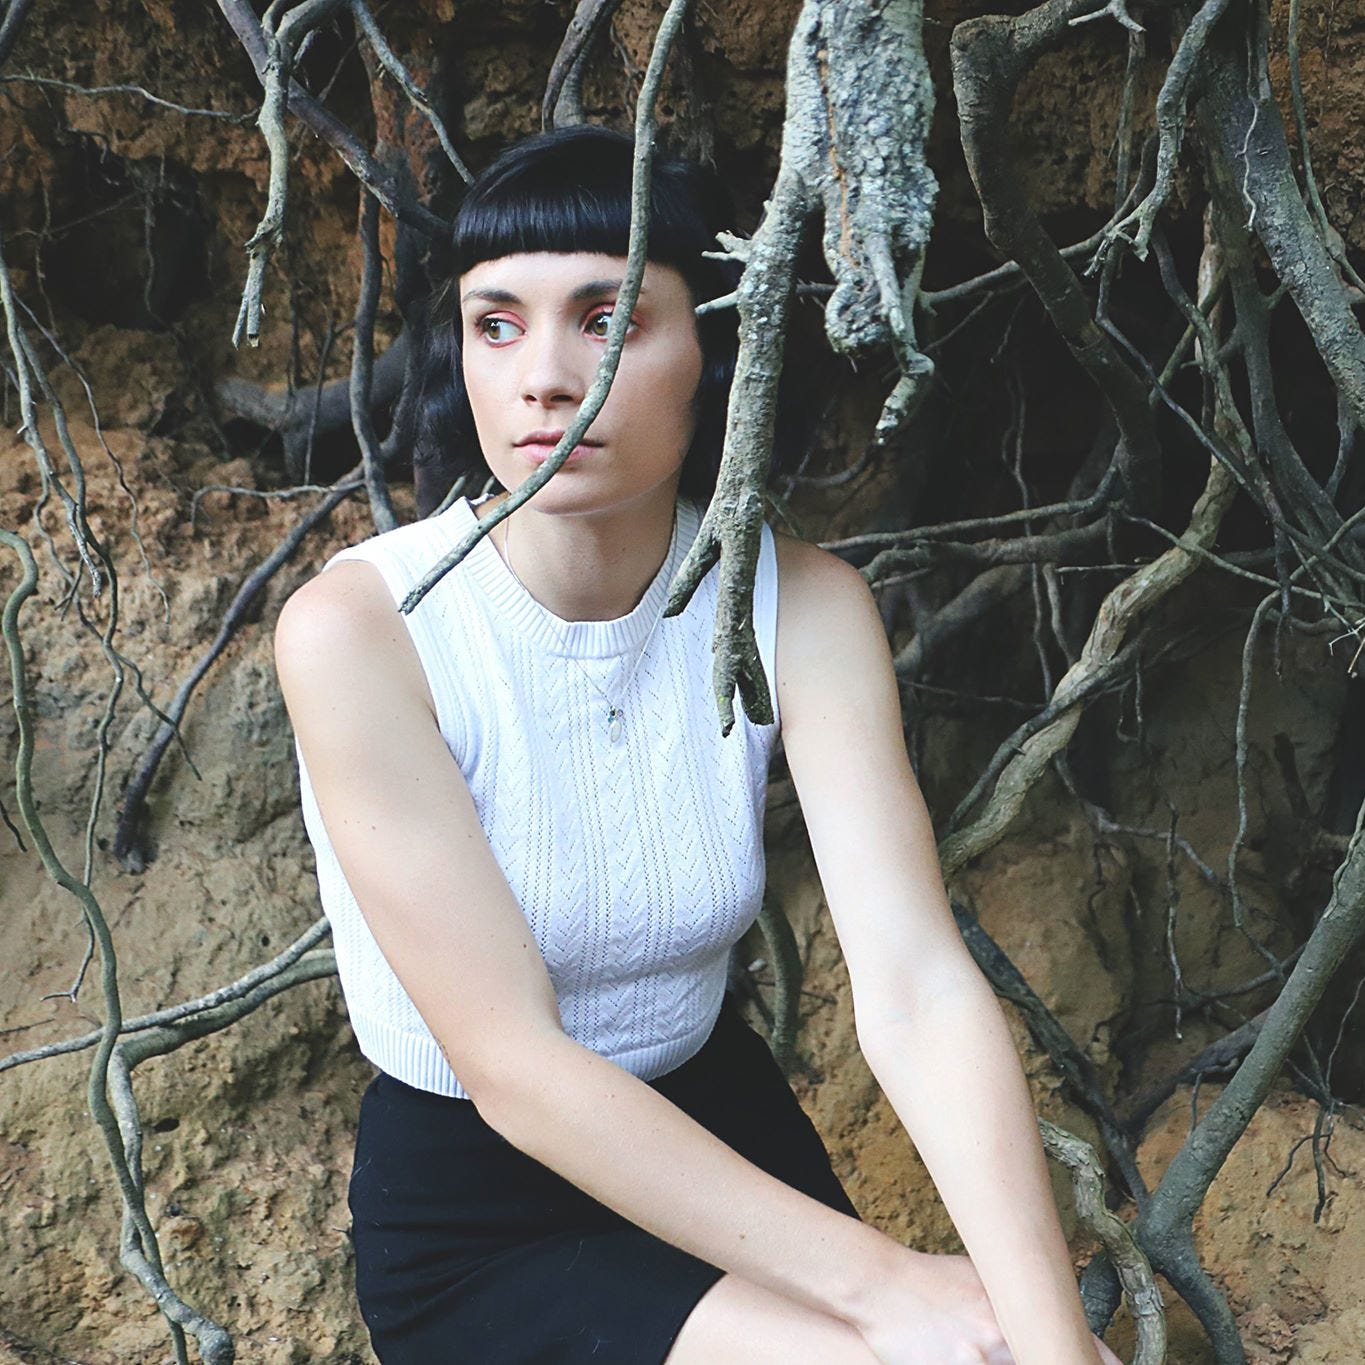 See Thru Girl: An inside look on Thrin Vianale and her band, winded